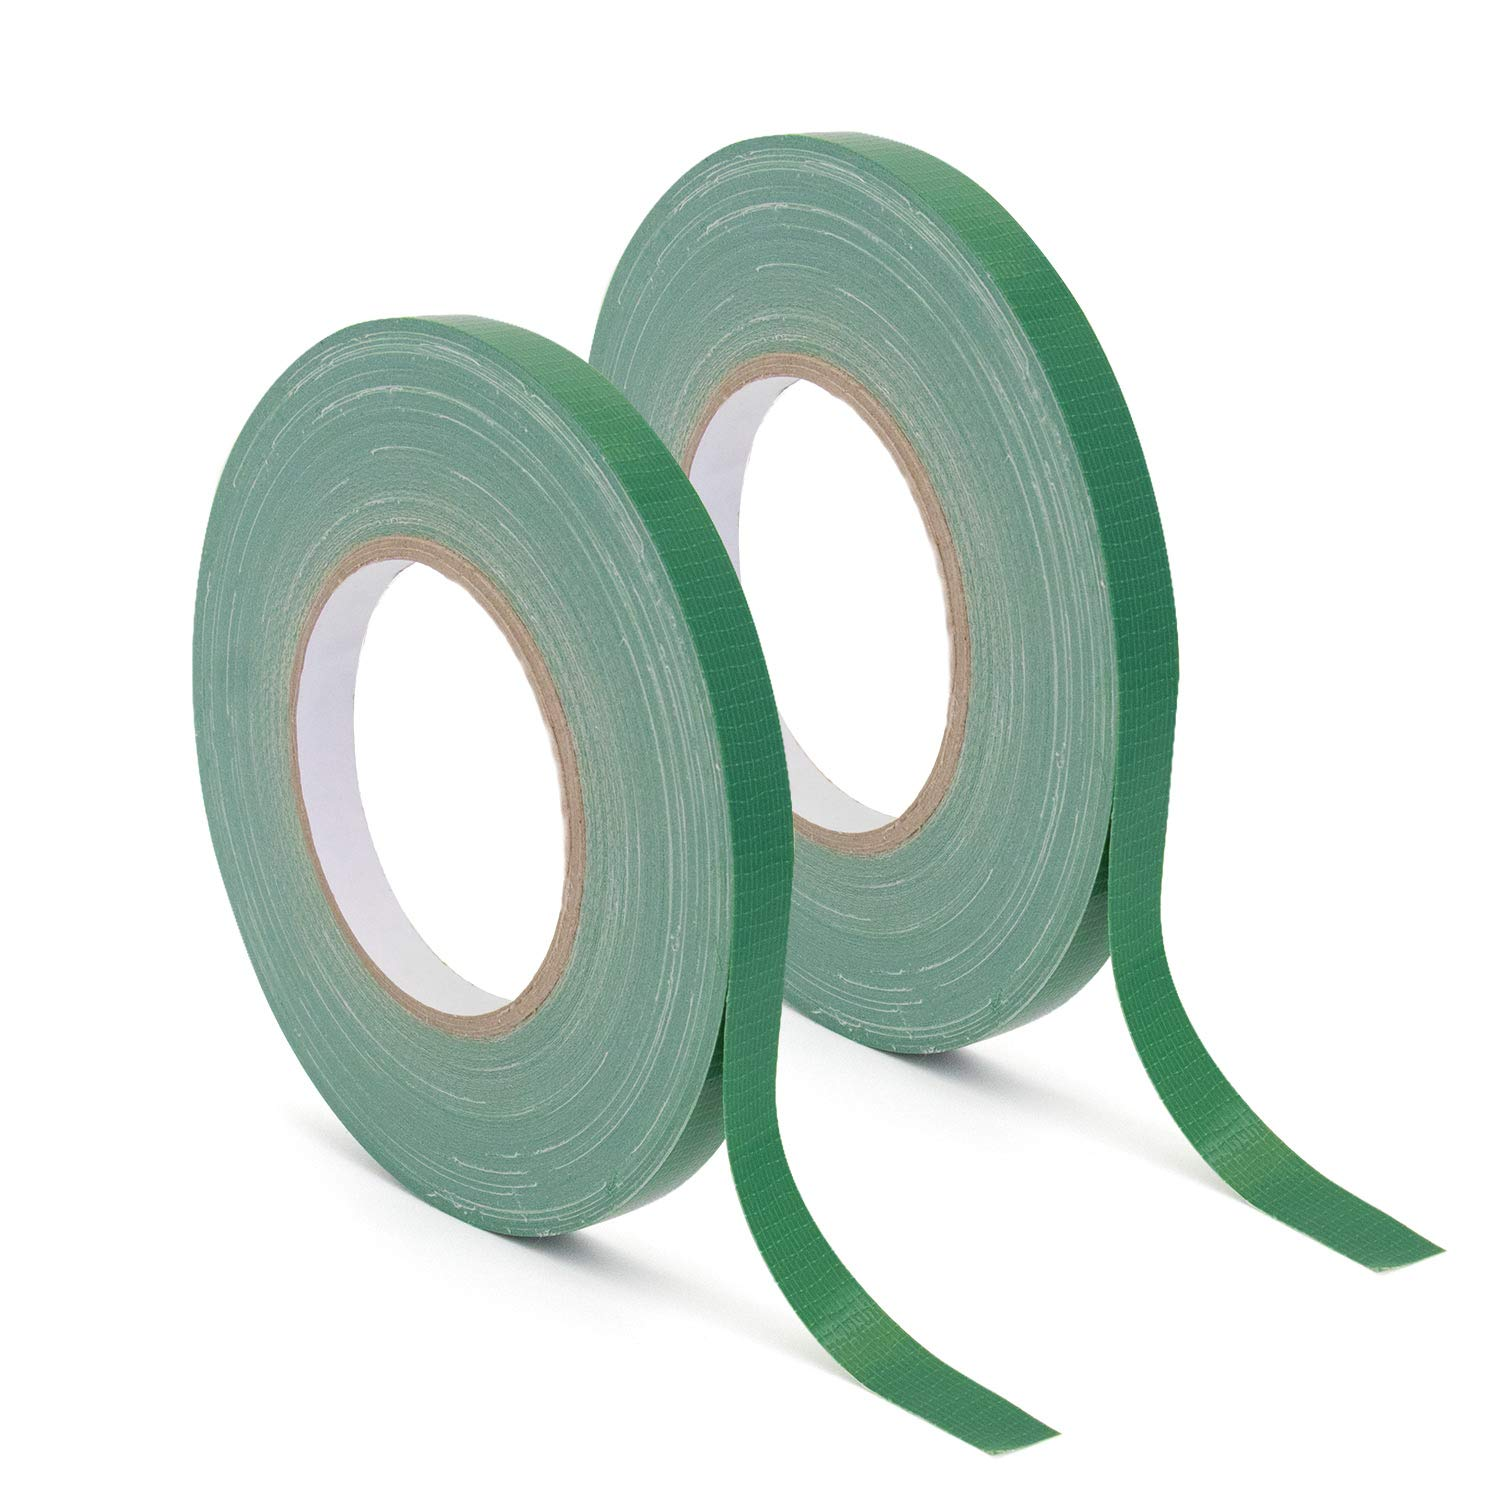 Floral Tape Green, Flower Wrap Adhesive Waterproof Tape for Bouquets by Royal Imports 0.5